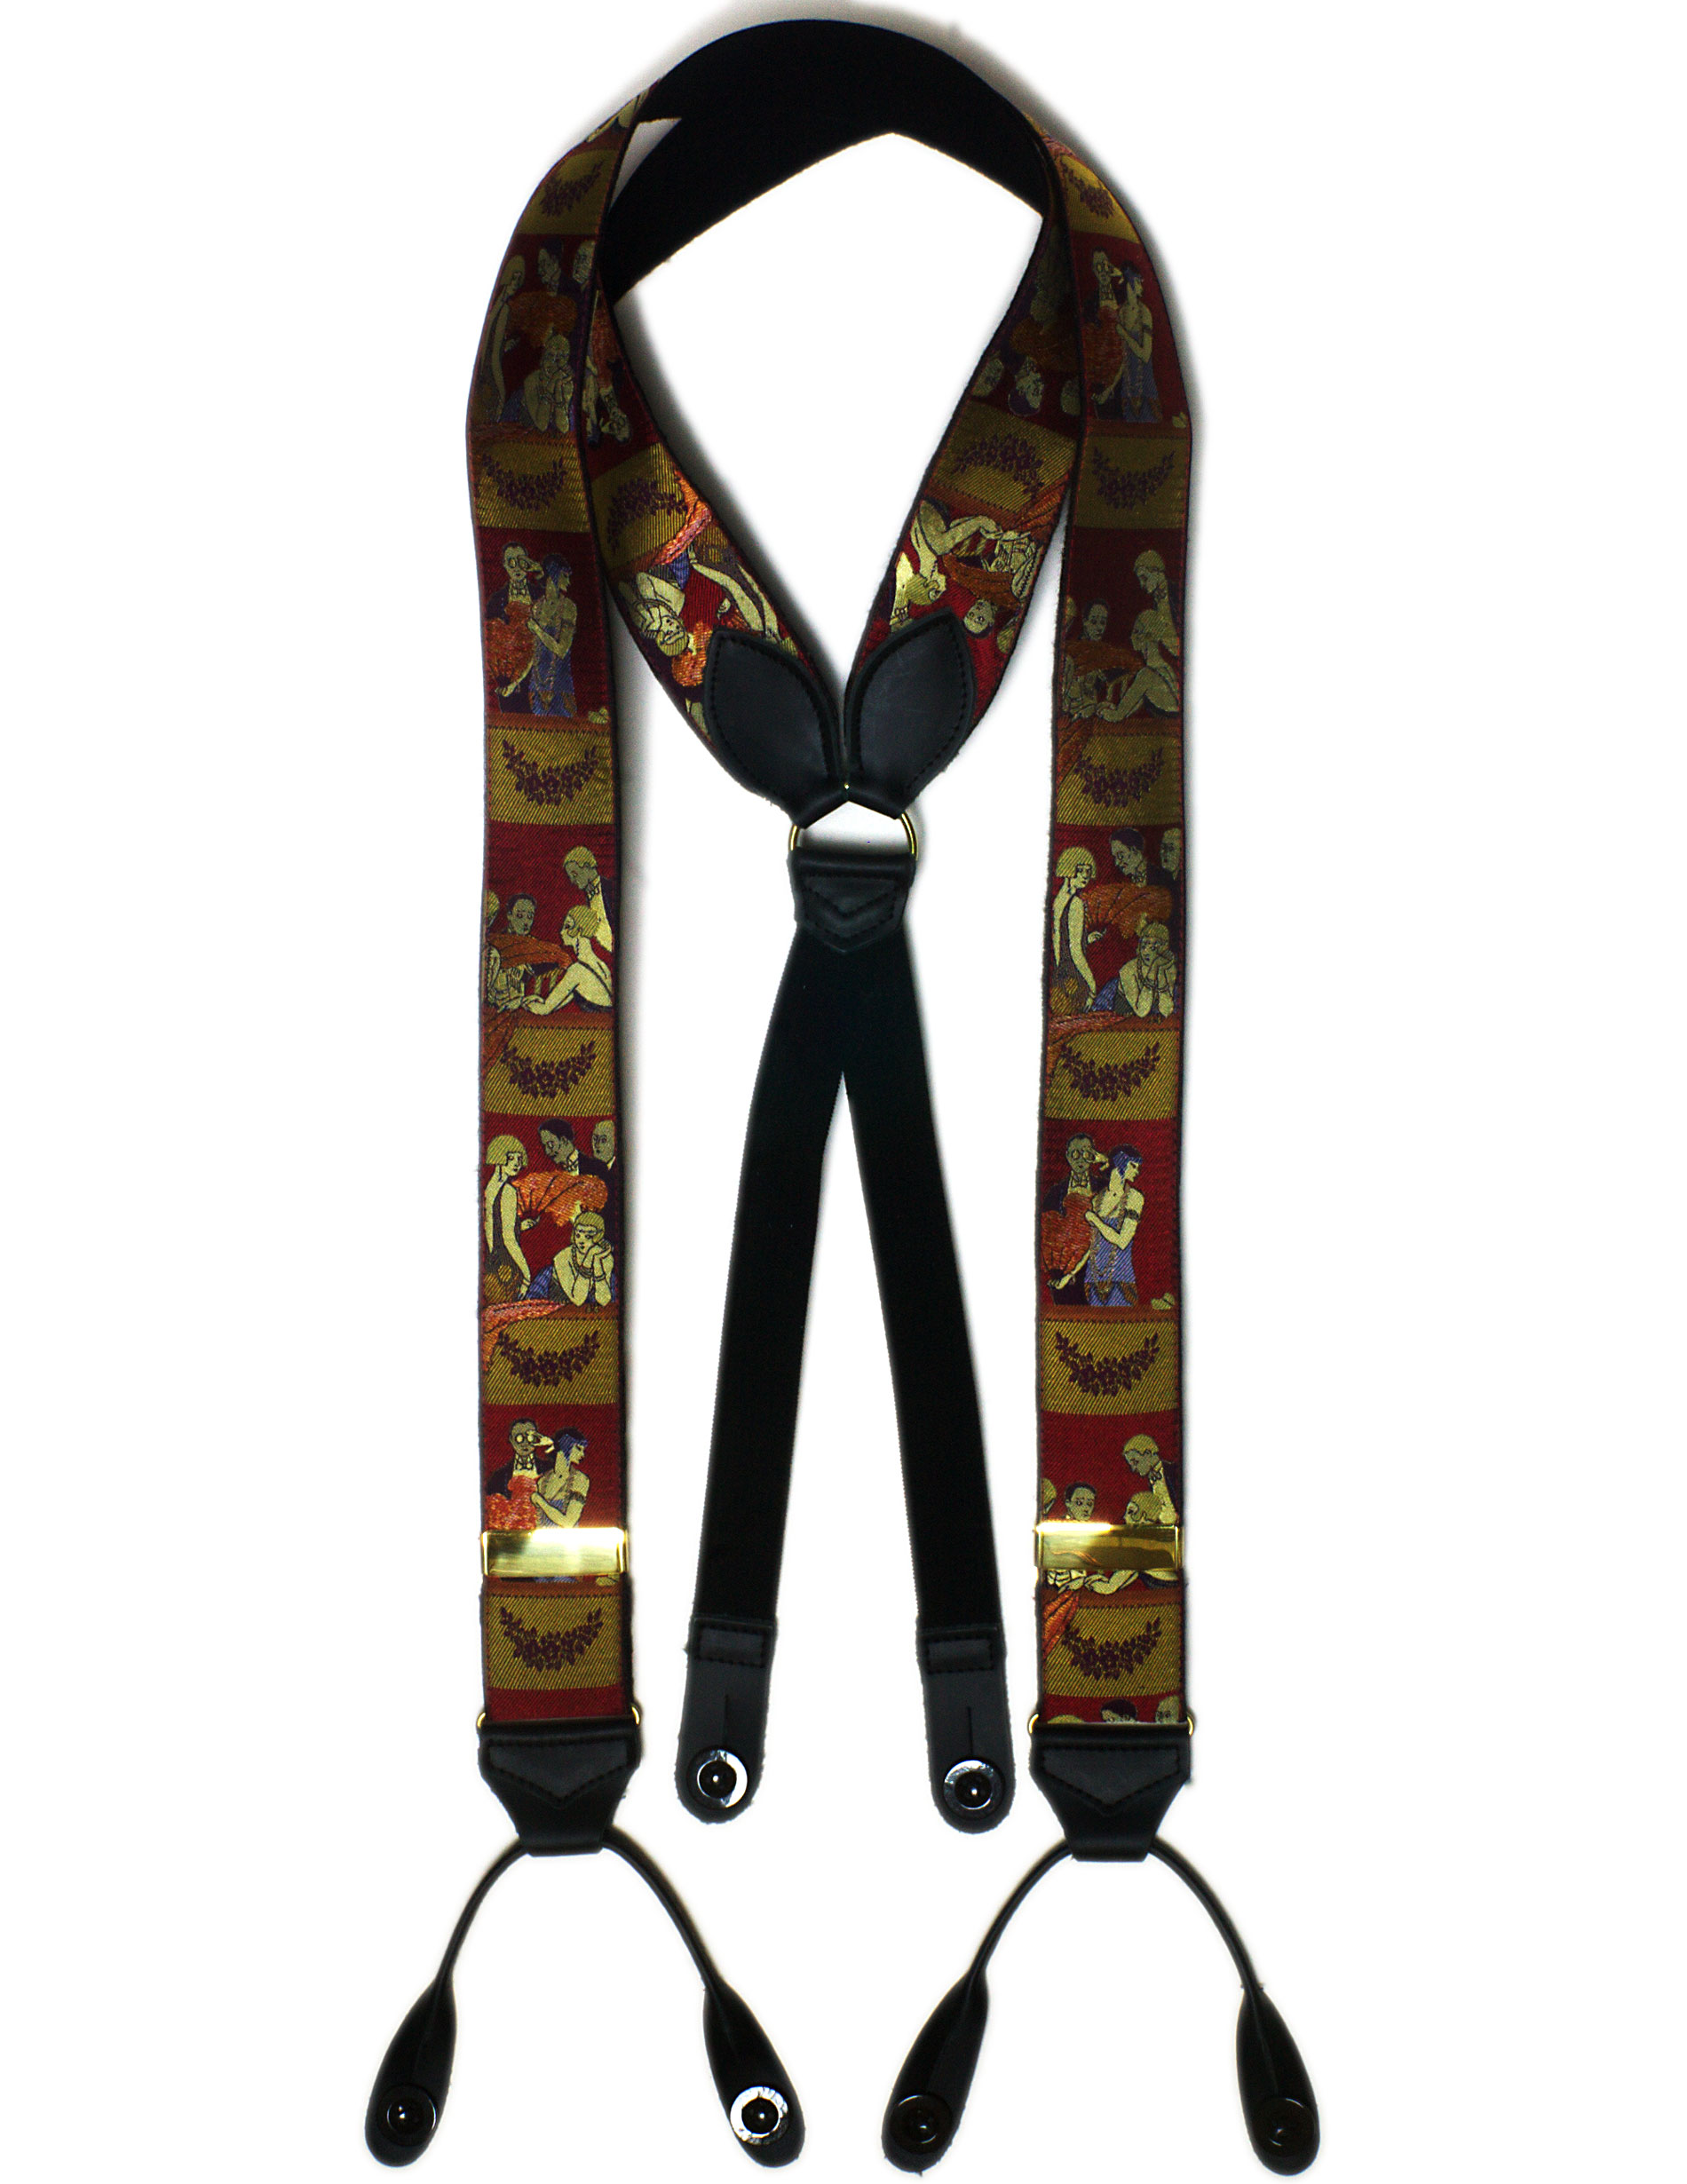 2219 Charleston Albert Thurston silk braces